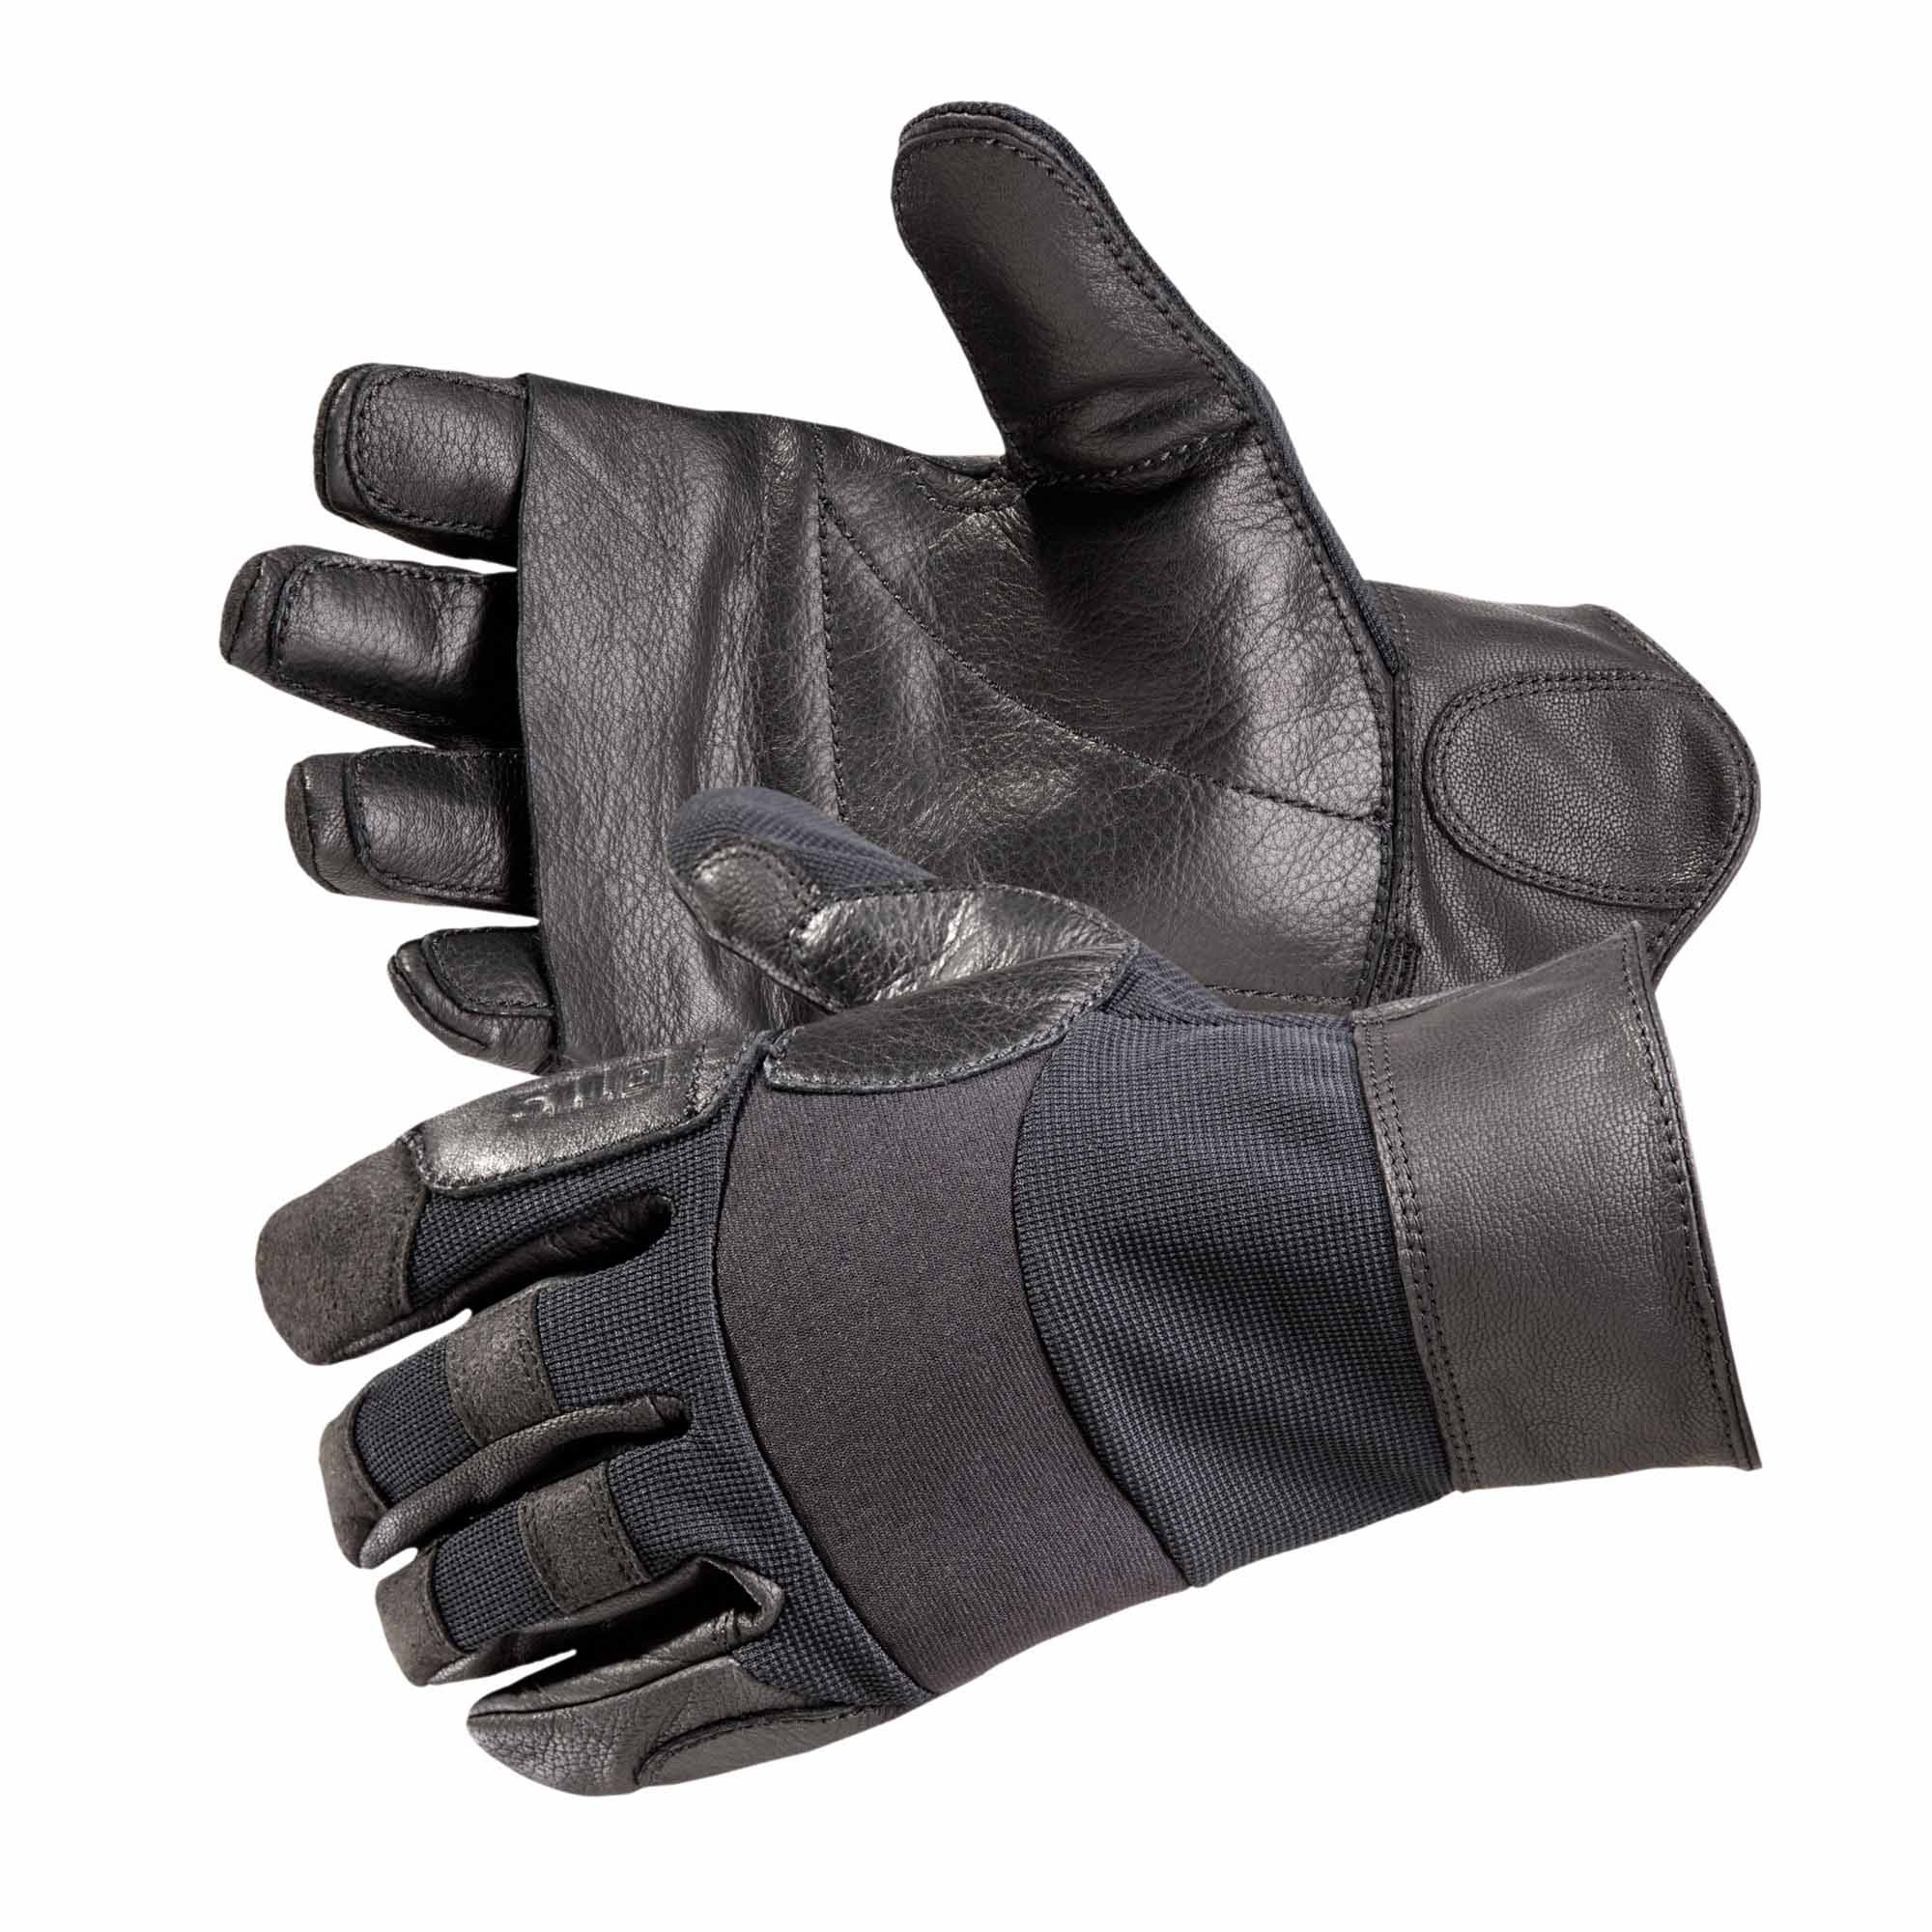 5.11 Tactical 59338 Fastac2 Repelling Gloves